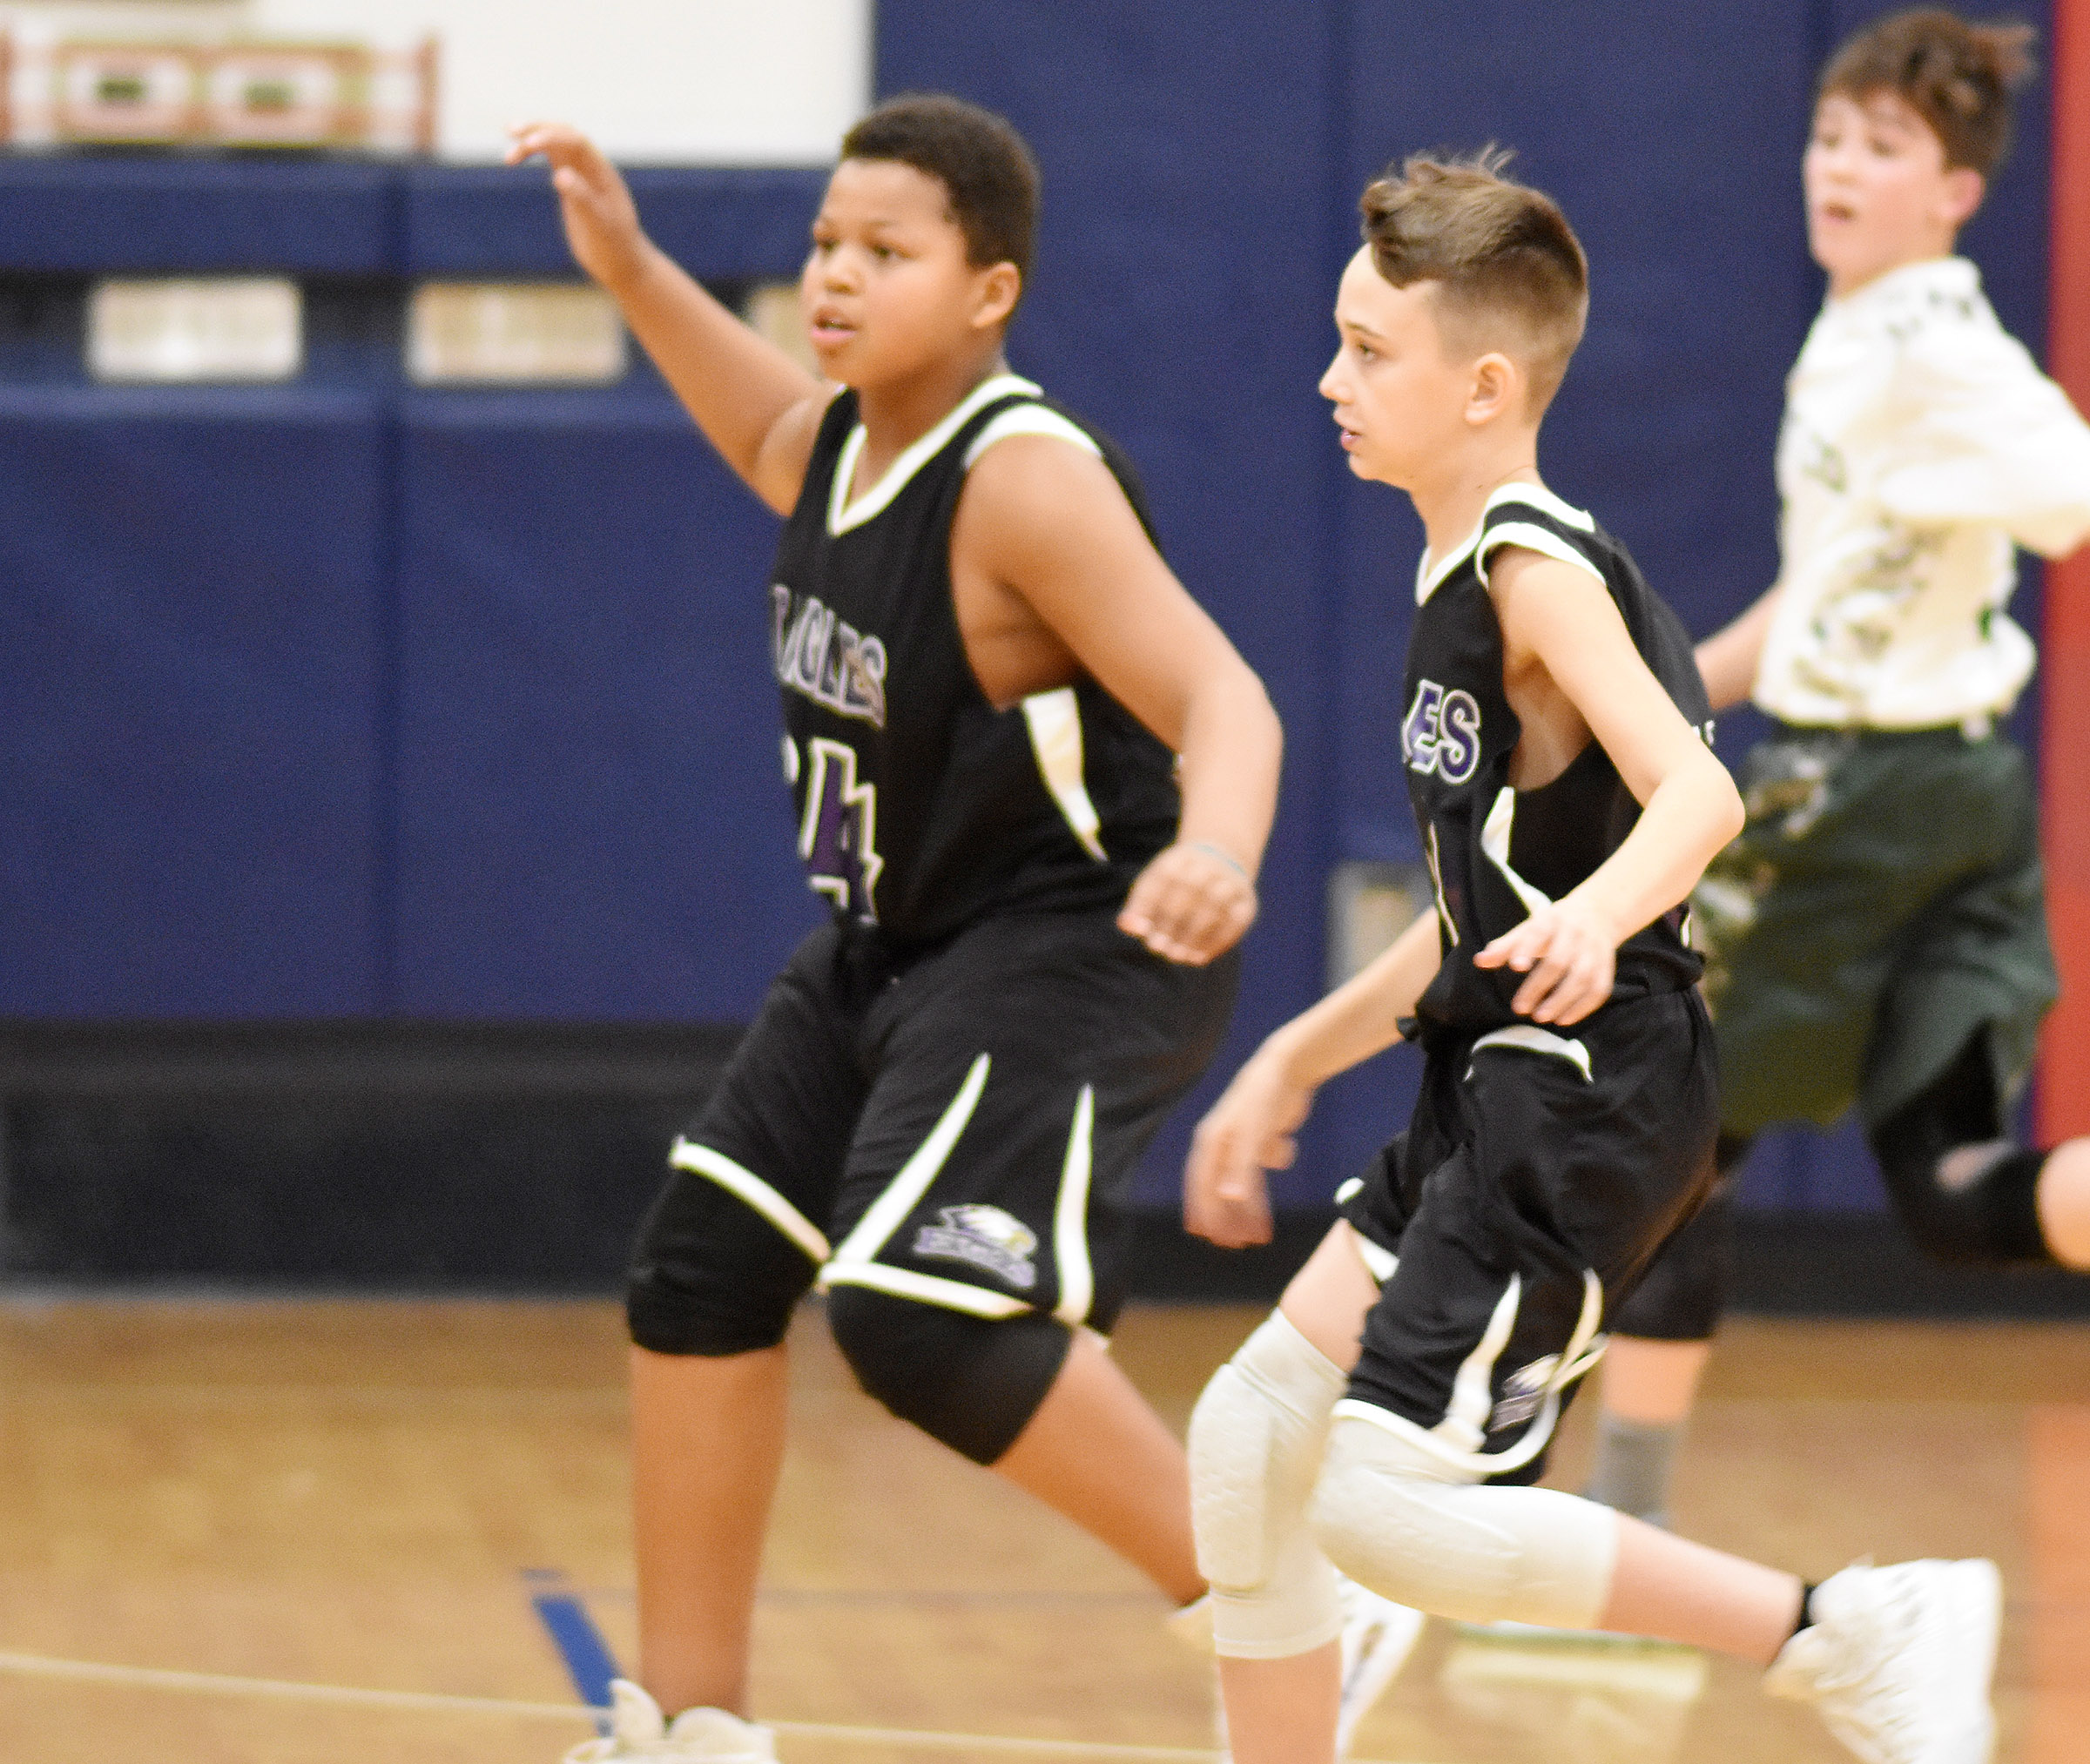 CMS seventh-graders Keondre Weathers, at left, and Camren Vicari play defense.